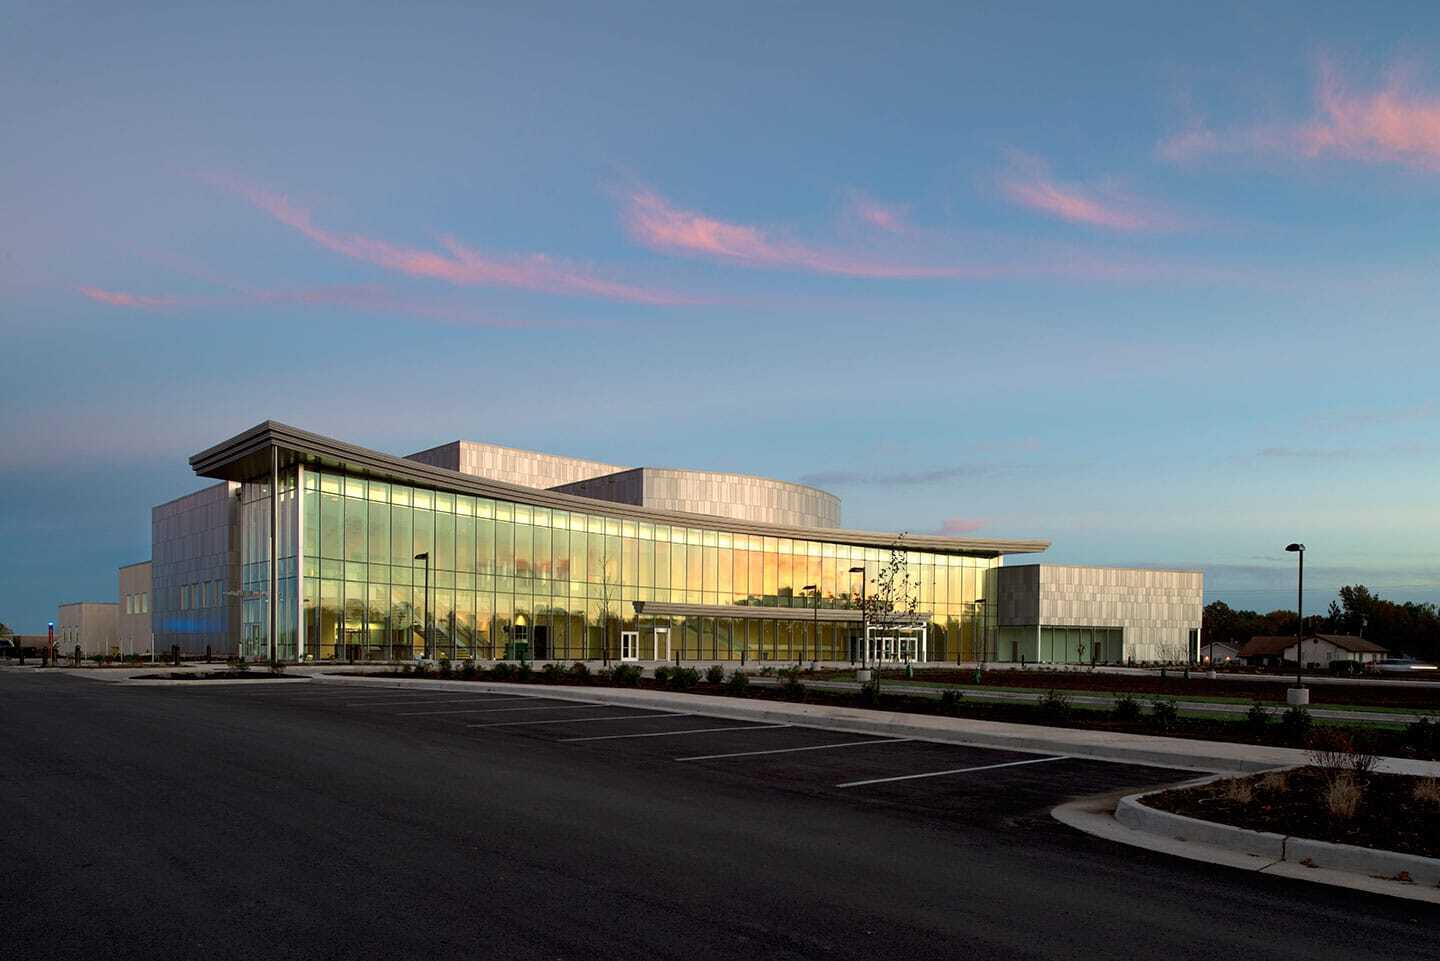 Dri-Design Painted Aluminum Panels offer the ultimate design flexibility for exterior and interior applications. Panels are painted using industry leading Fluoropolymer based paints for long lasting finish durability, while our finishers use a 100% air capture system to destroy the VOCs produced, so there is no adverse environmental impact.